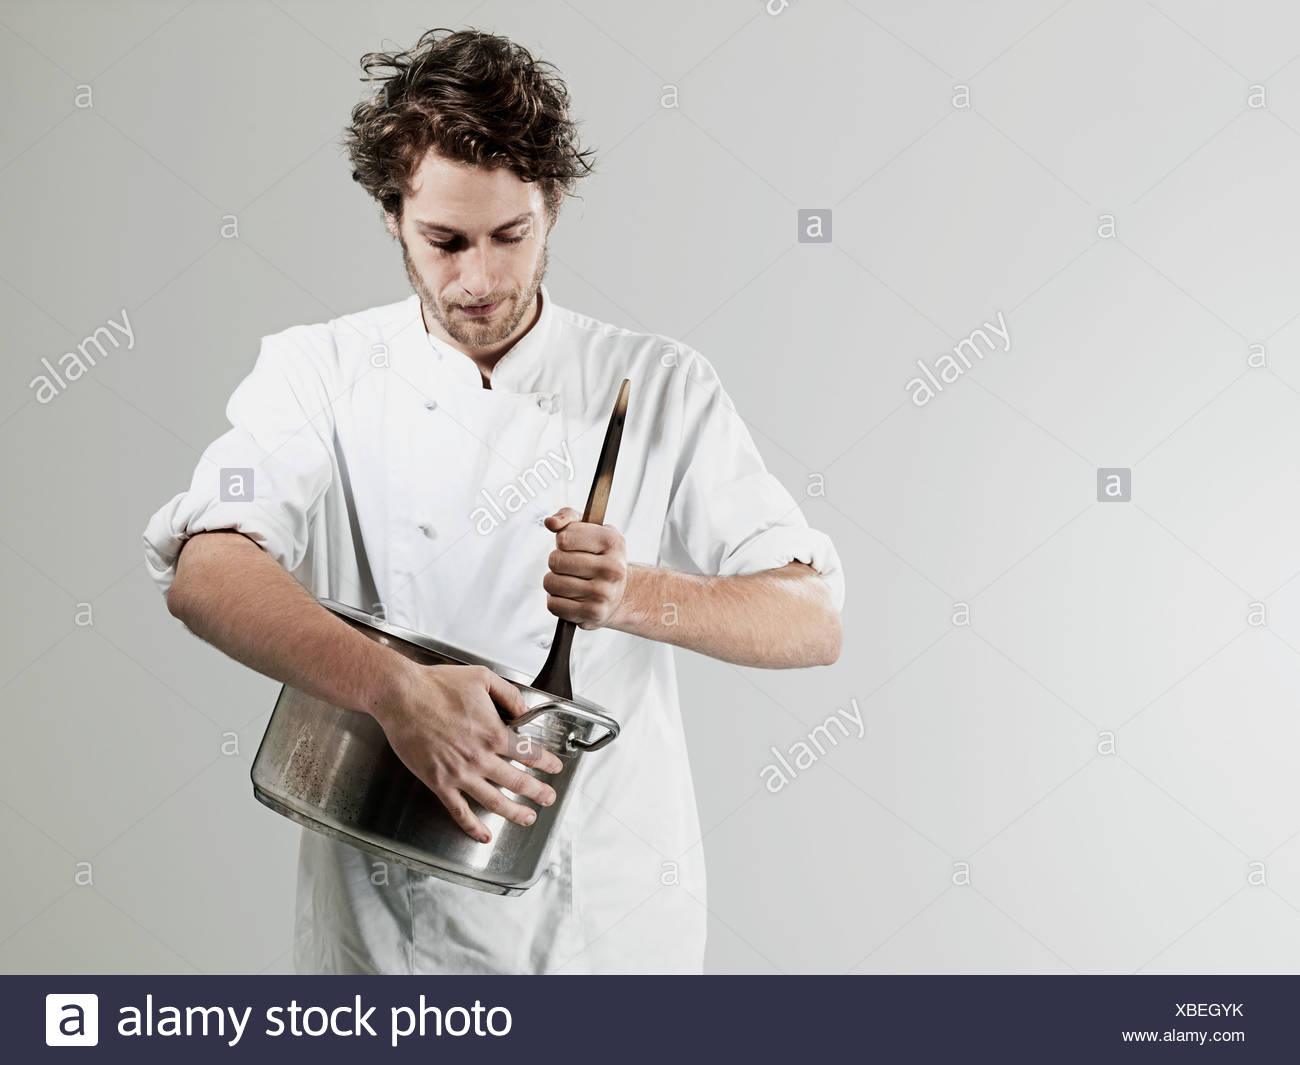 Chef stirring in pan against white background - Stock Image